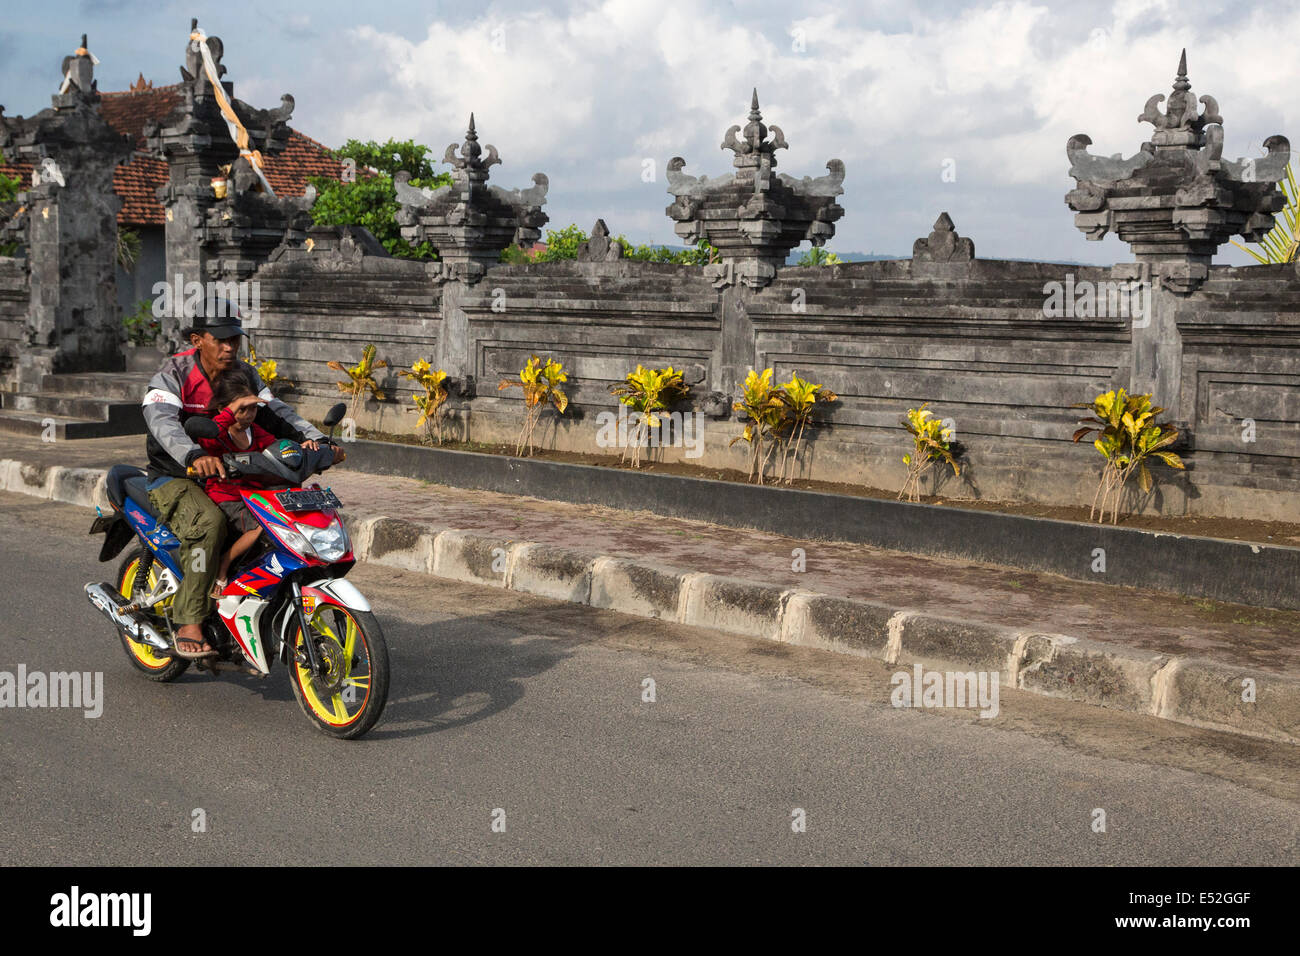 Bali, Indonesia.  Father and Daughter on Motorbike, no Helmets. - Stock Image